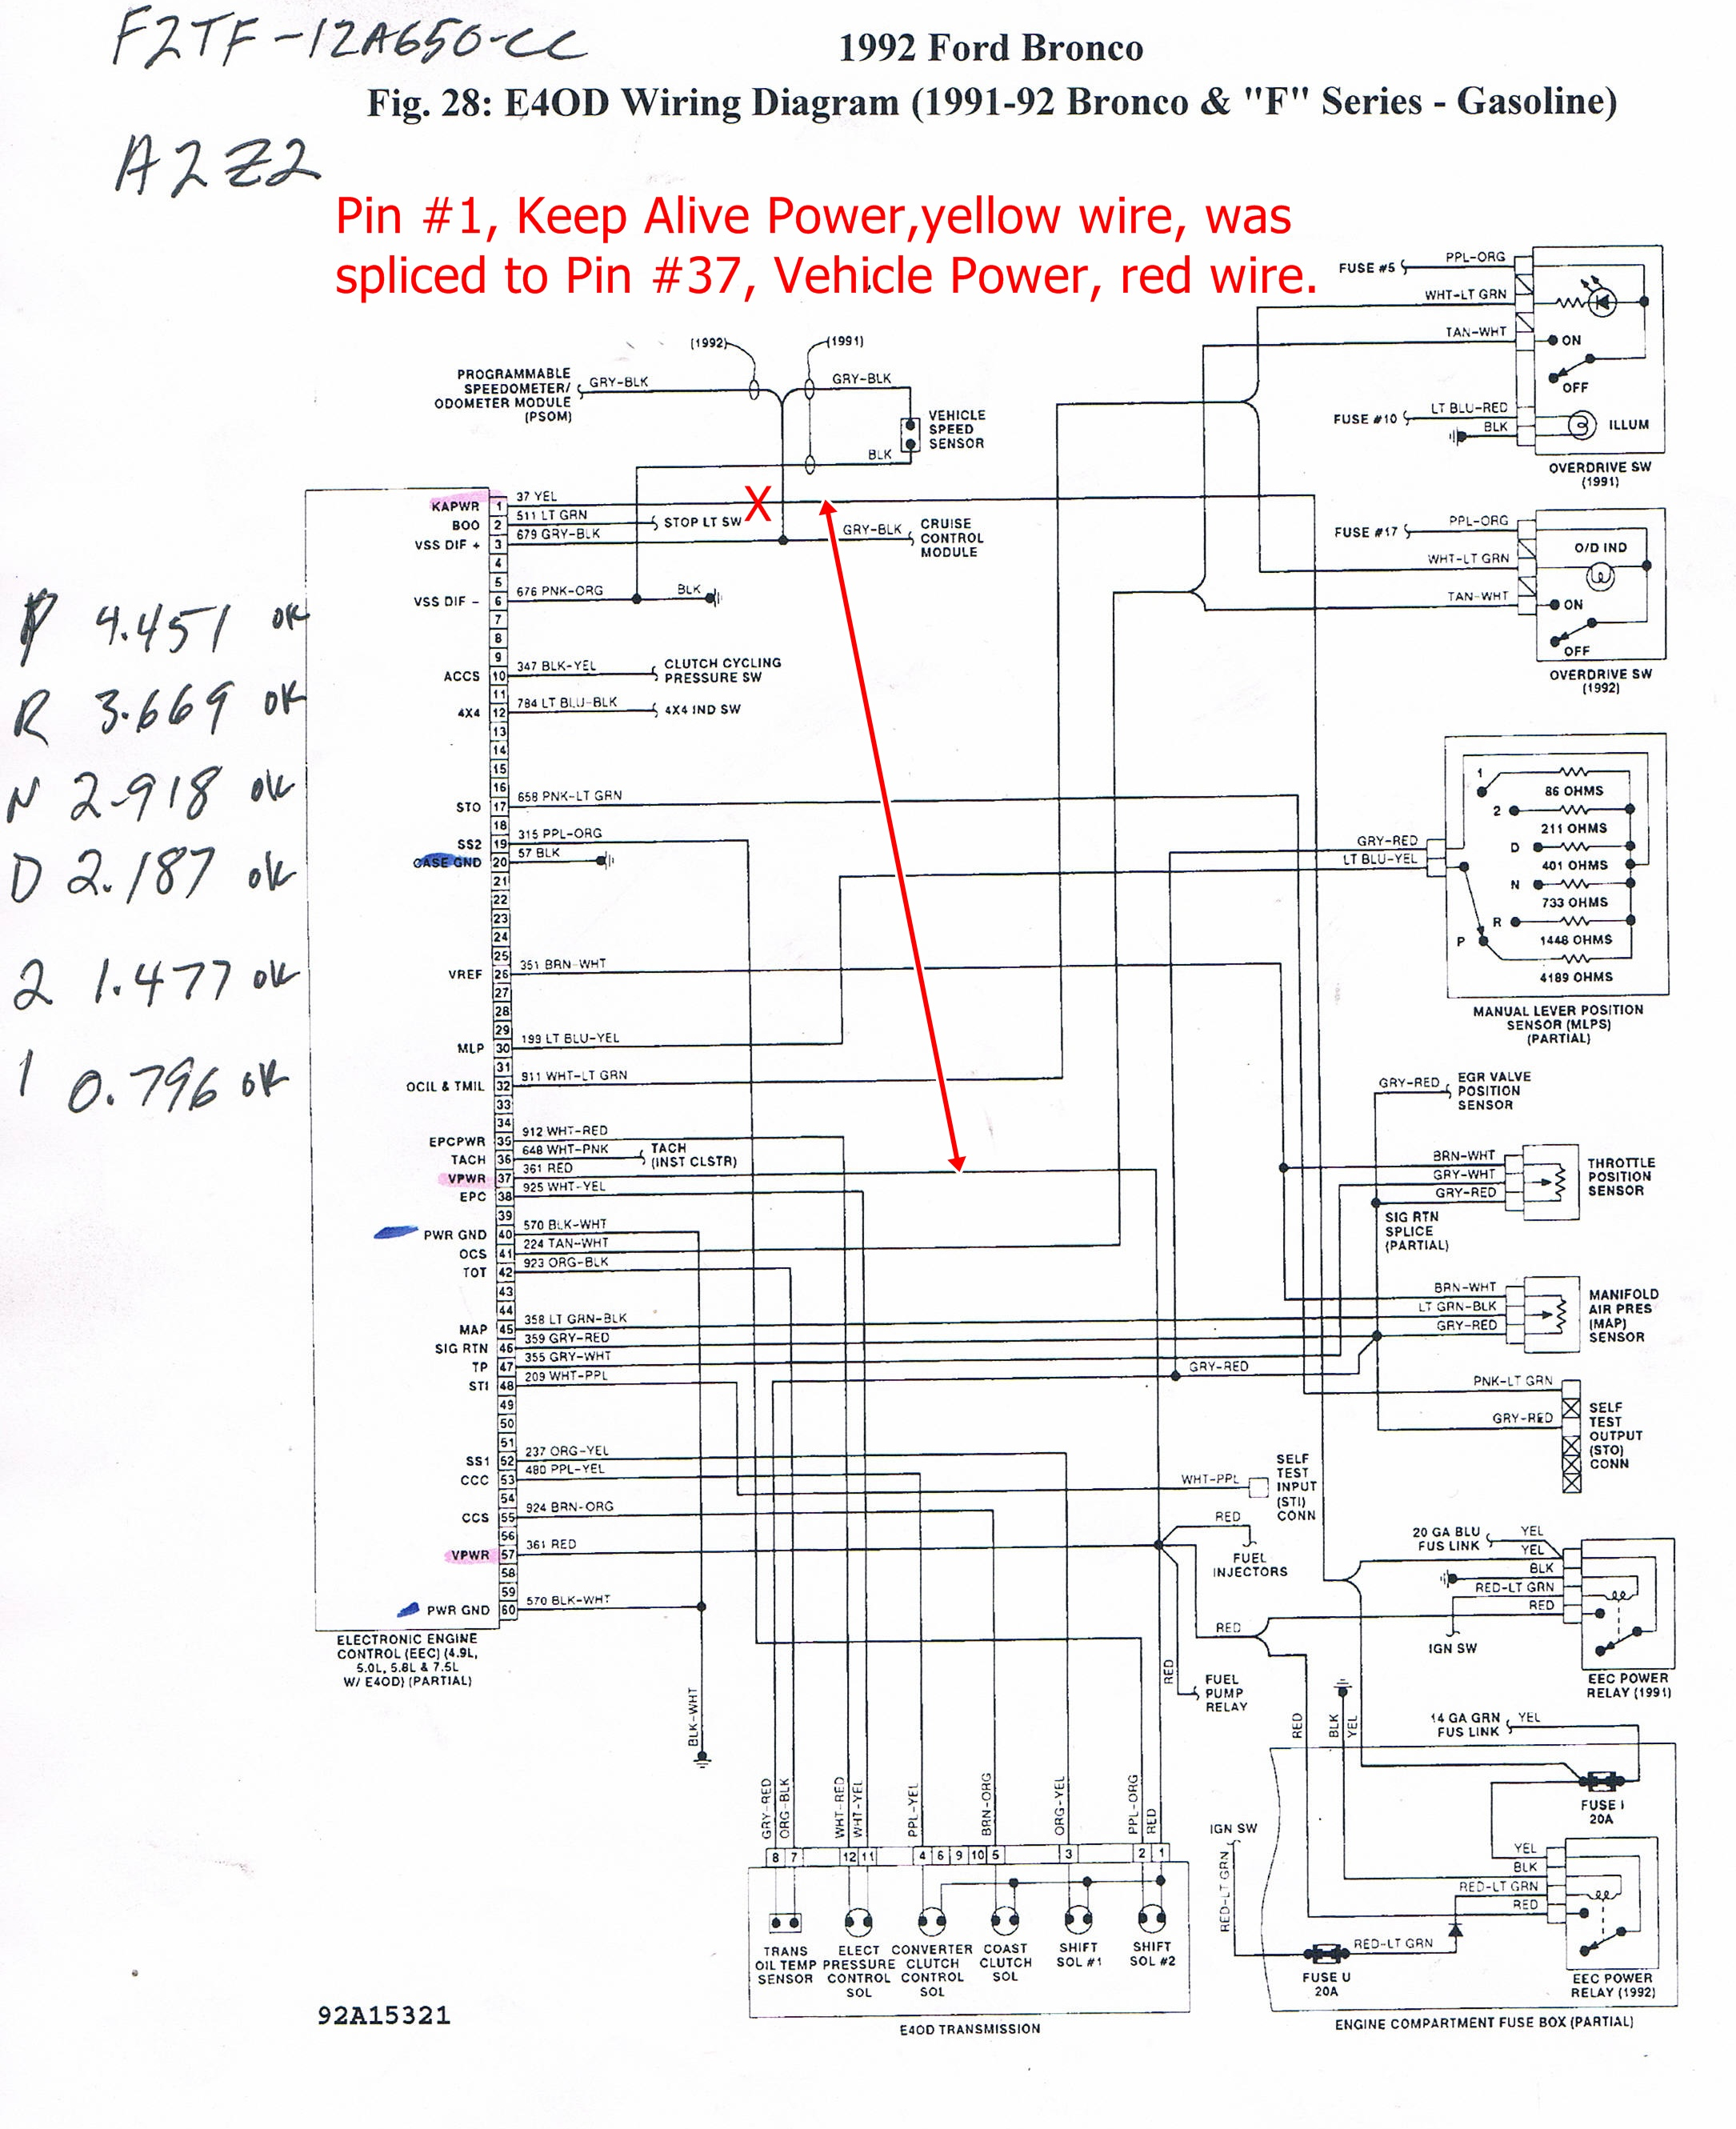 96 Windstar Fuse Diagram Data Wiring Diagrams 1995 Ford Aerostar Box January 2013 The Transletter Minivan